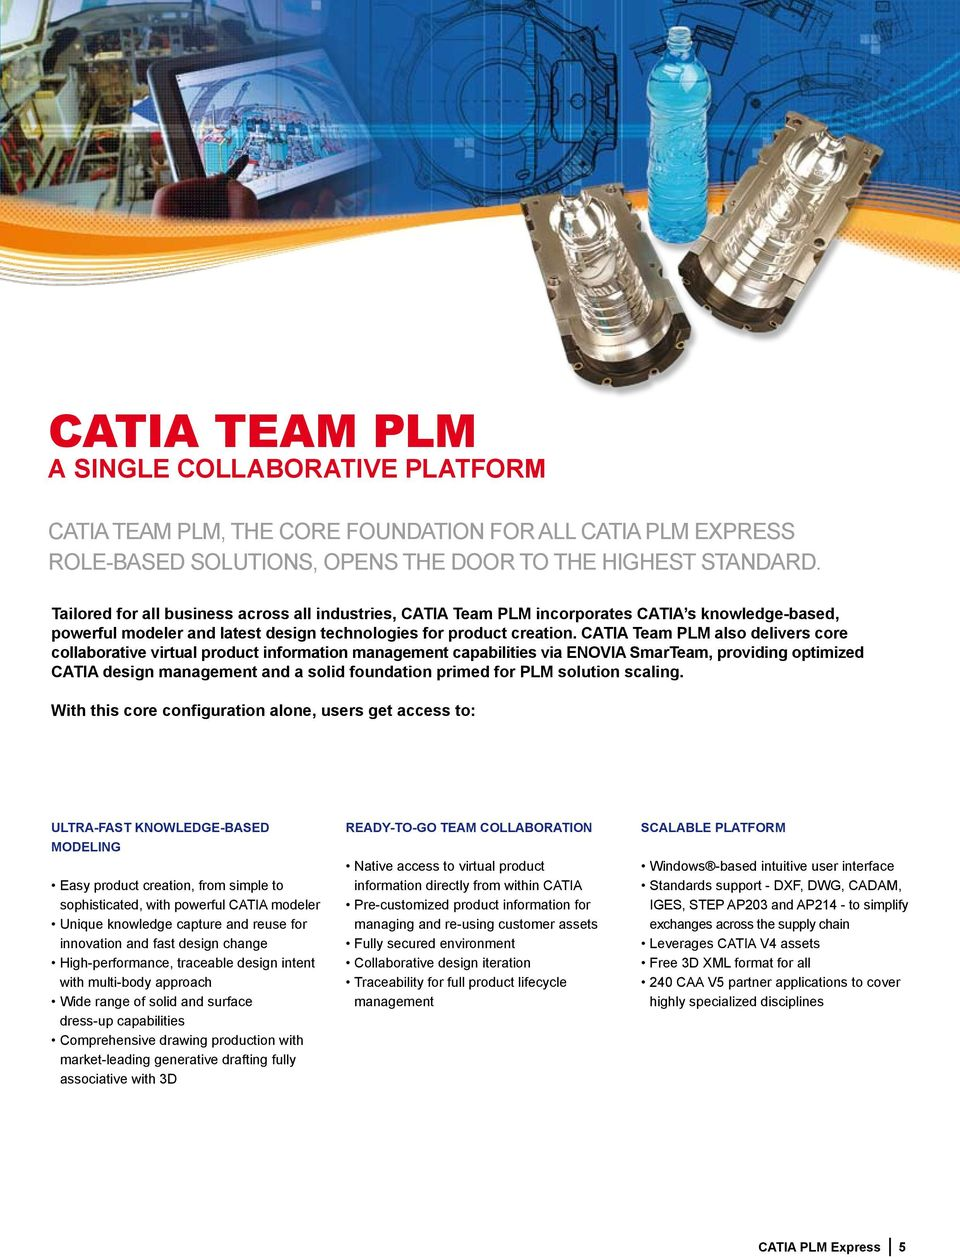 CATIA Team PLM also delivers core collaborative virtual product information management capabilities via ENOVIA SmarTeam, providing optimized CATIA design management and a solid foundation primed for